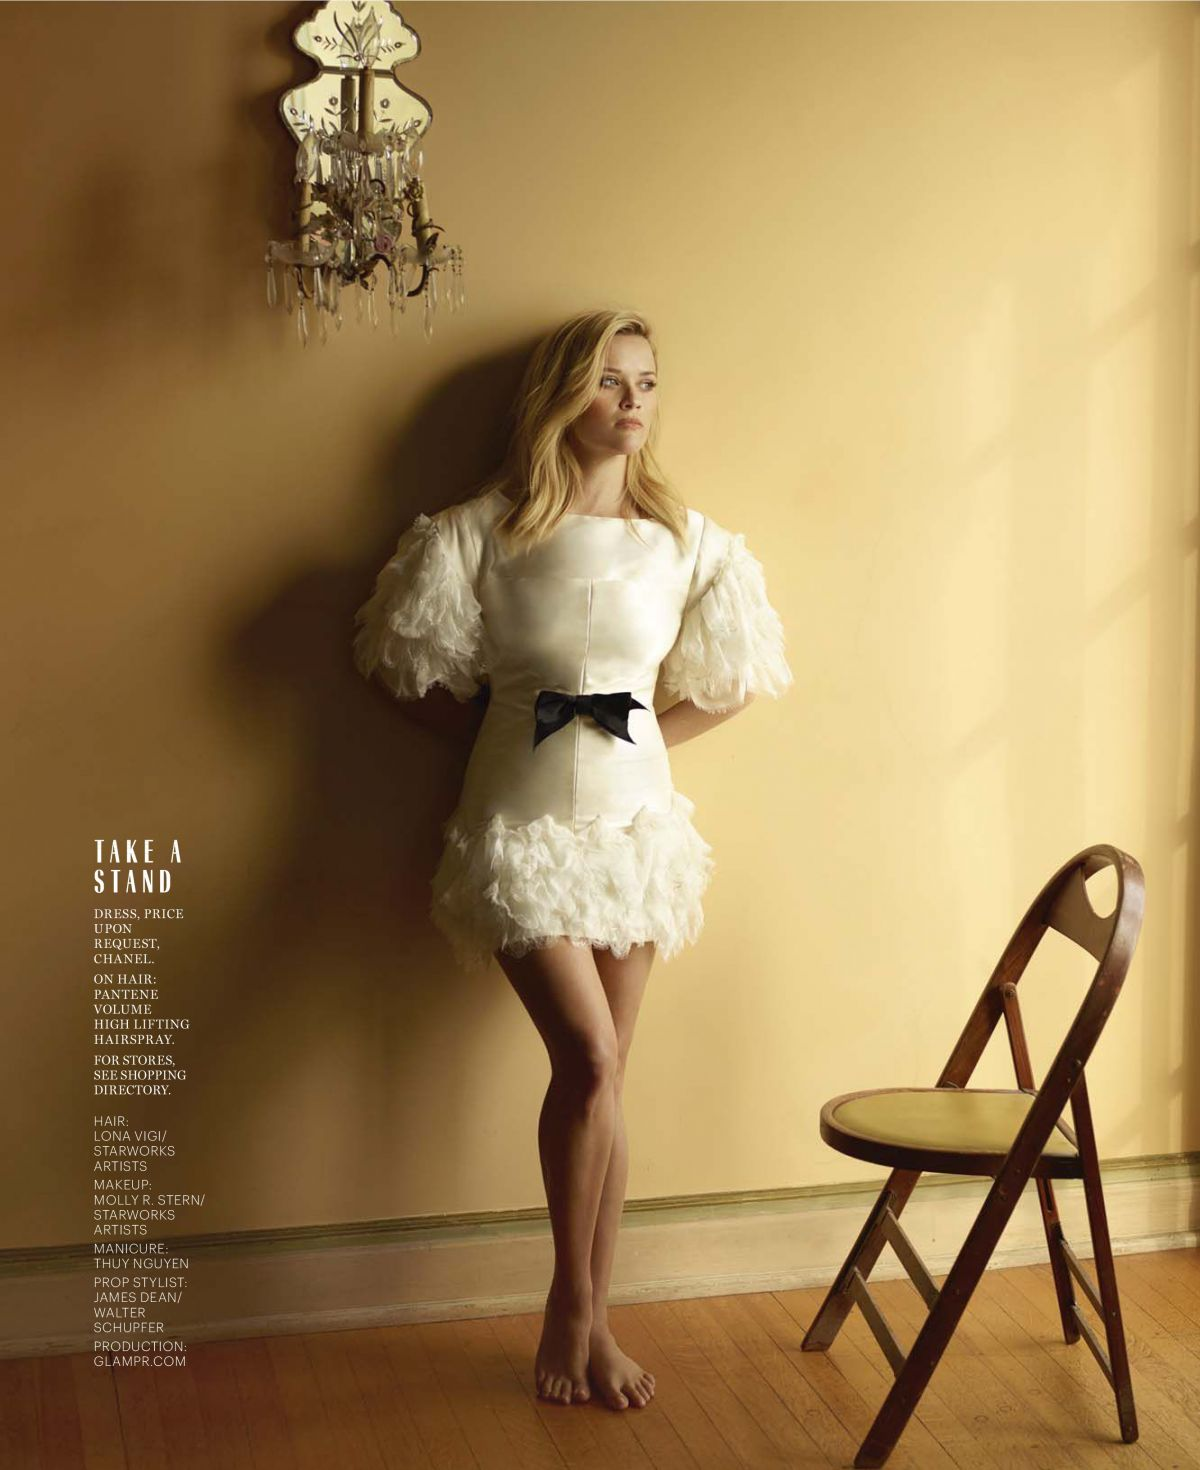 image Reese witherspoon fear 02